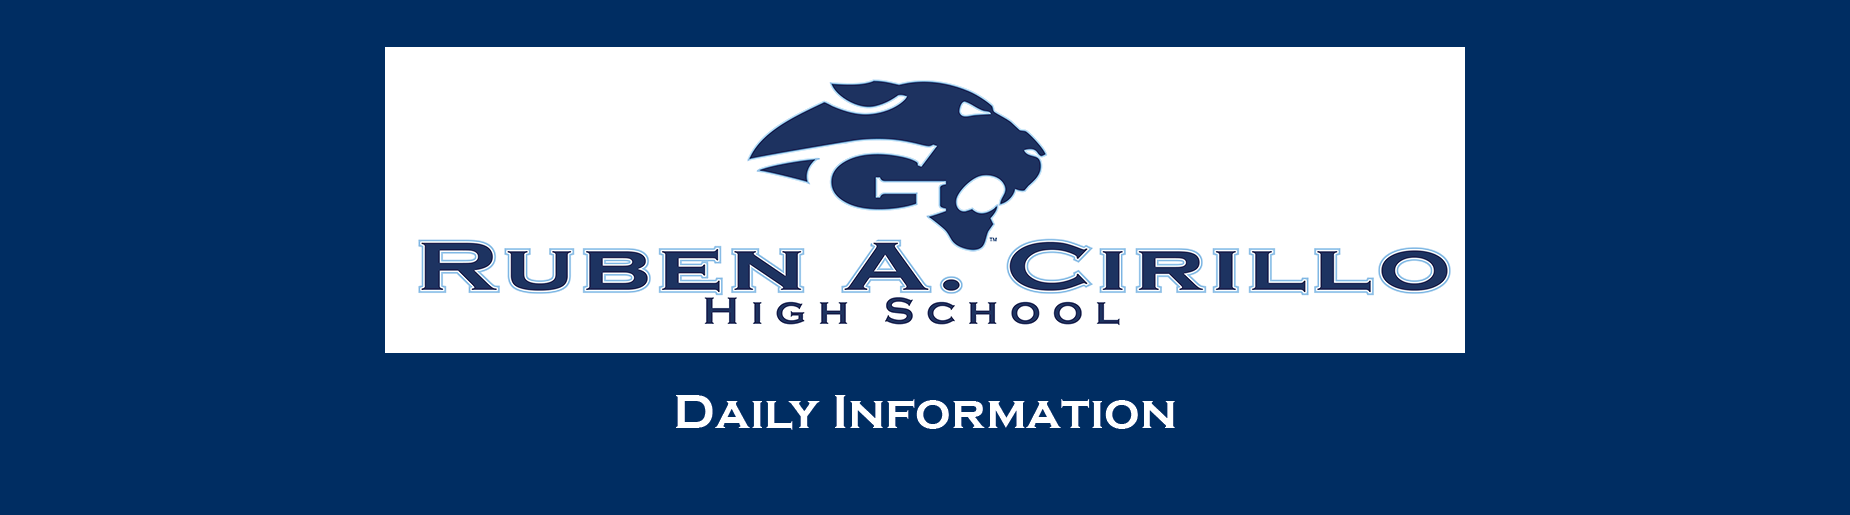 Ruben A. Cirillo High School Daily Information 2019-2020